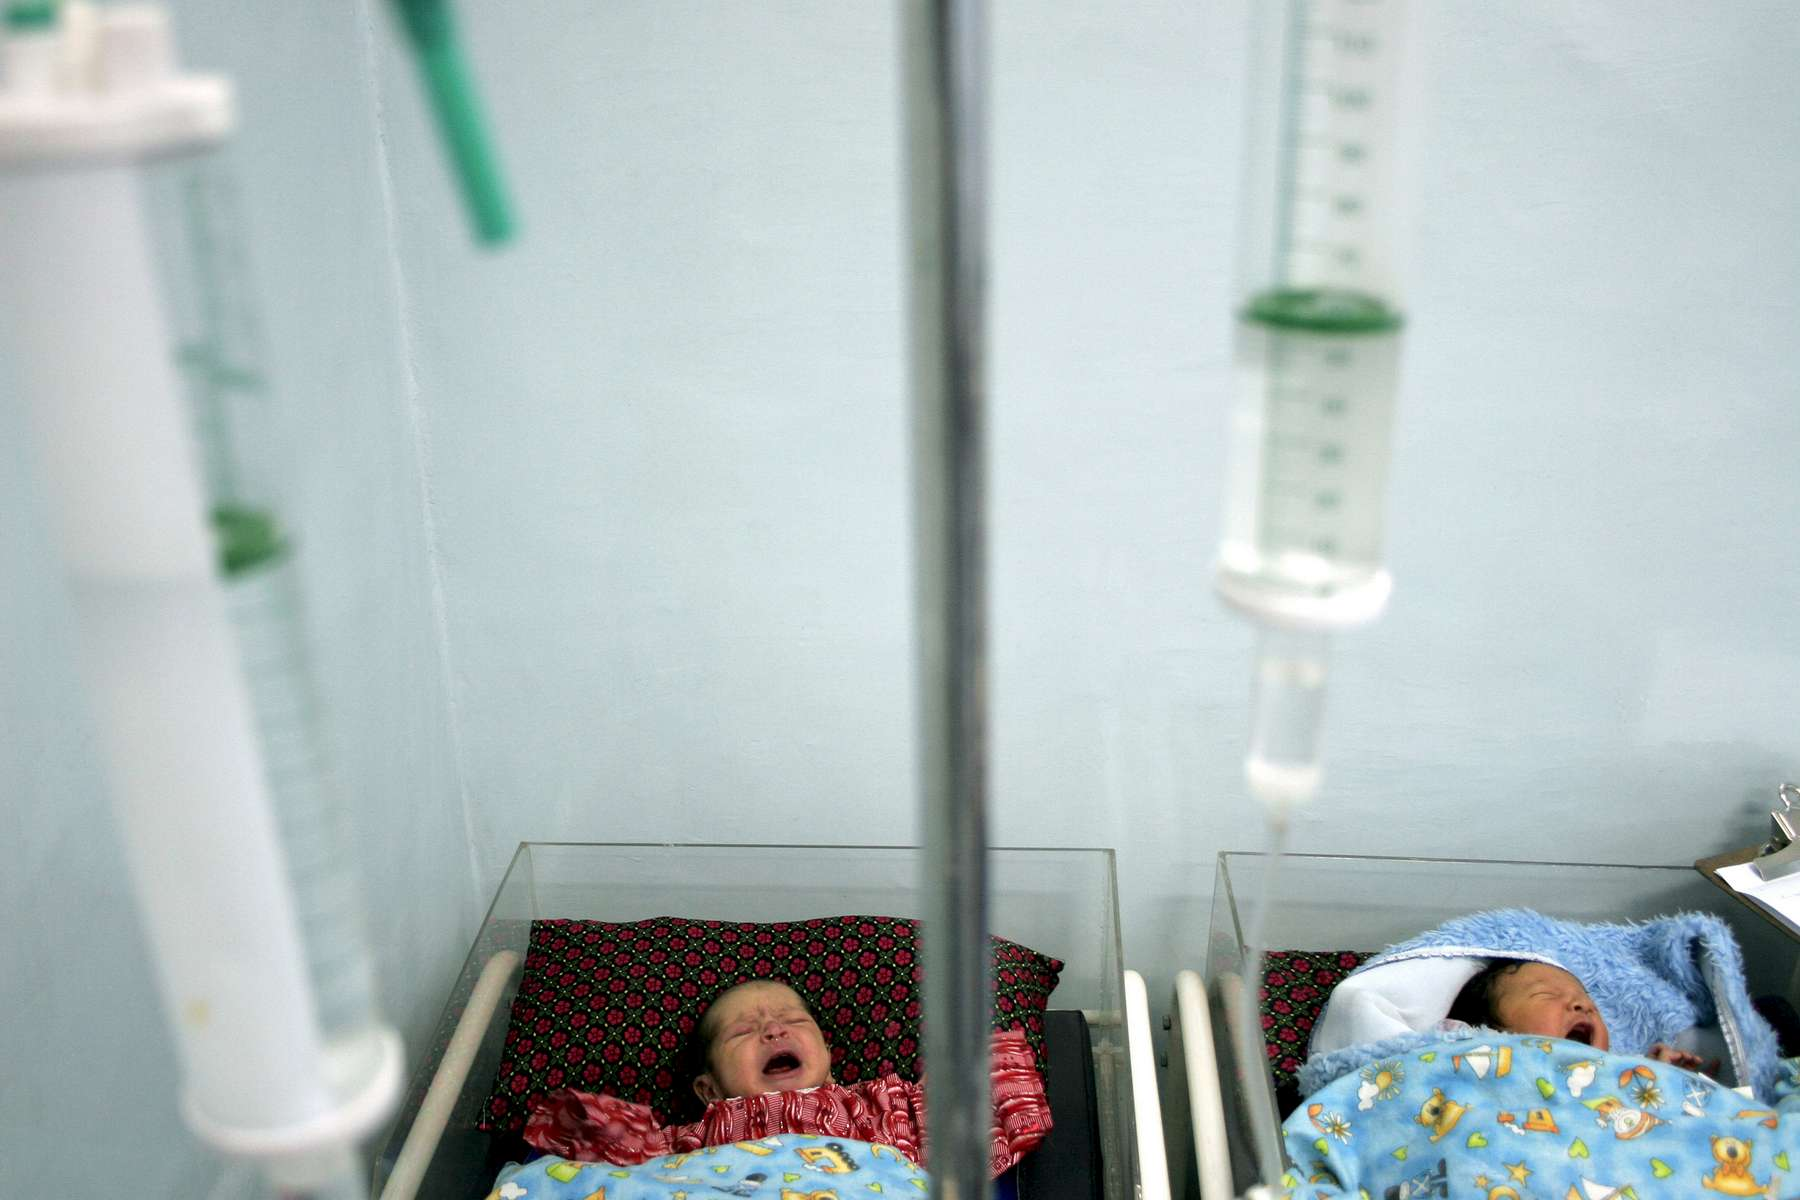 Intravenous tubes set up for babies in the nursery. One in four Afghan children die before the age of five.